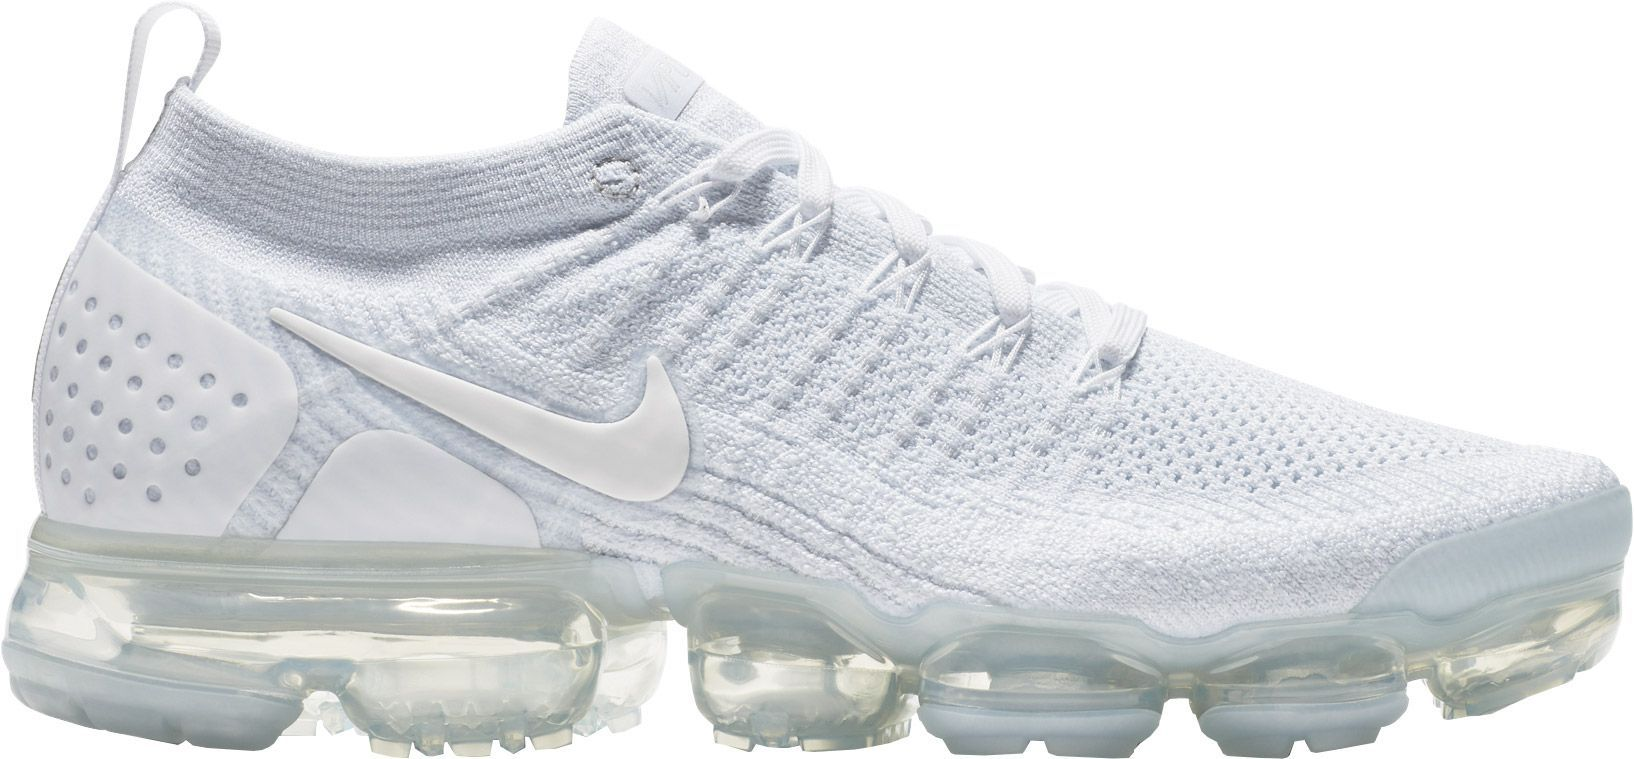 the latest e6dea b21a1 Nike Men's Air VaporMax Flyknit 2 Running Shoes in 2019 ...